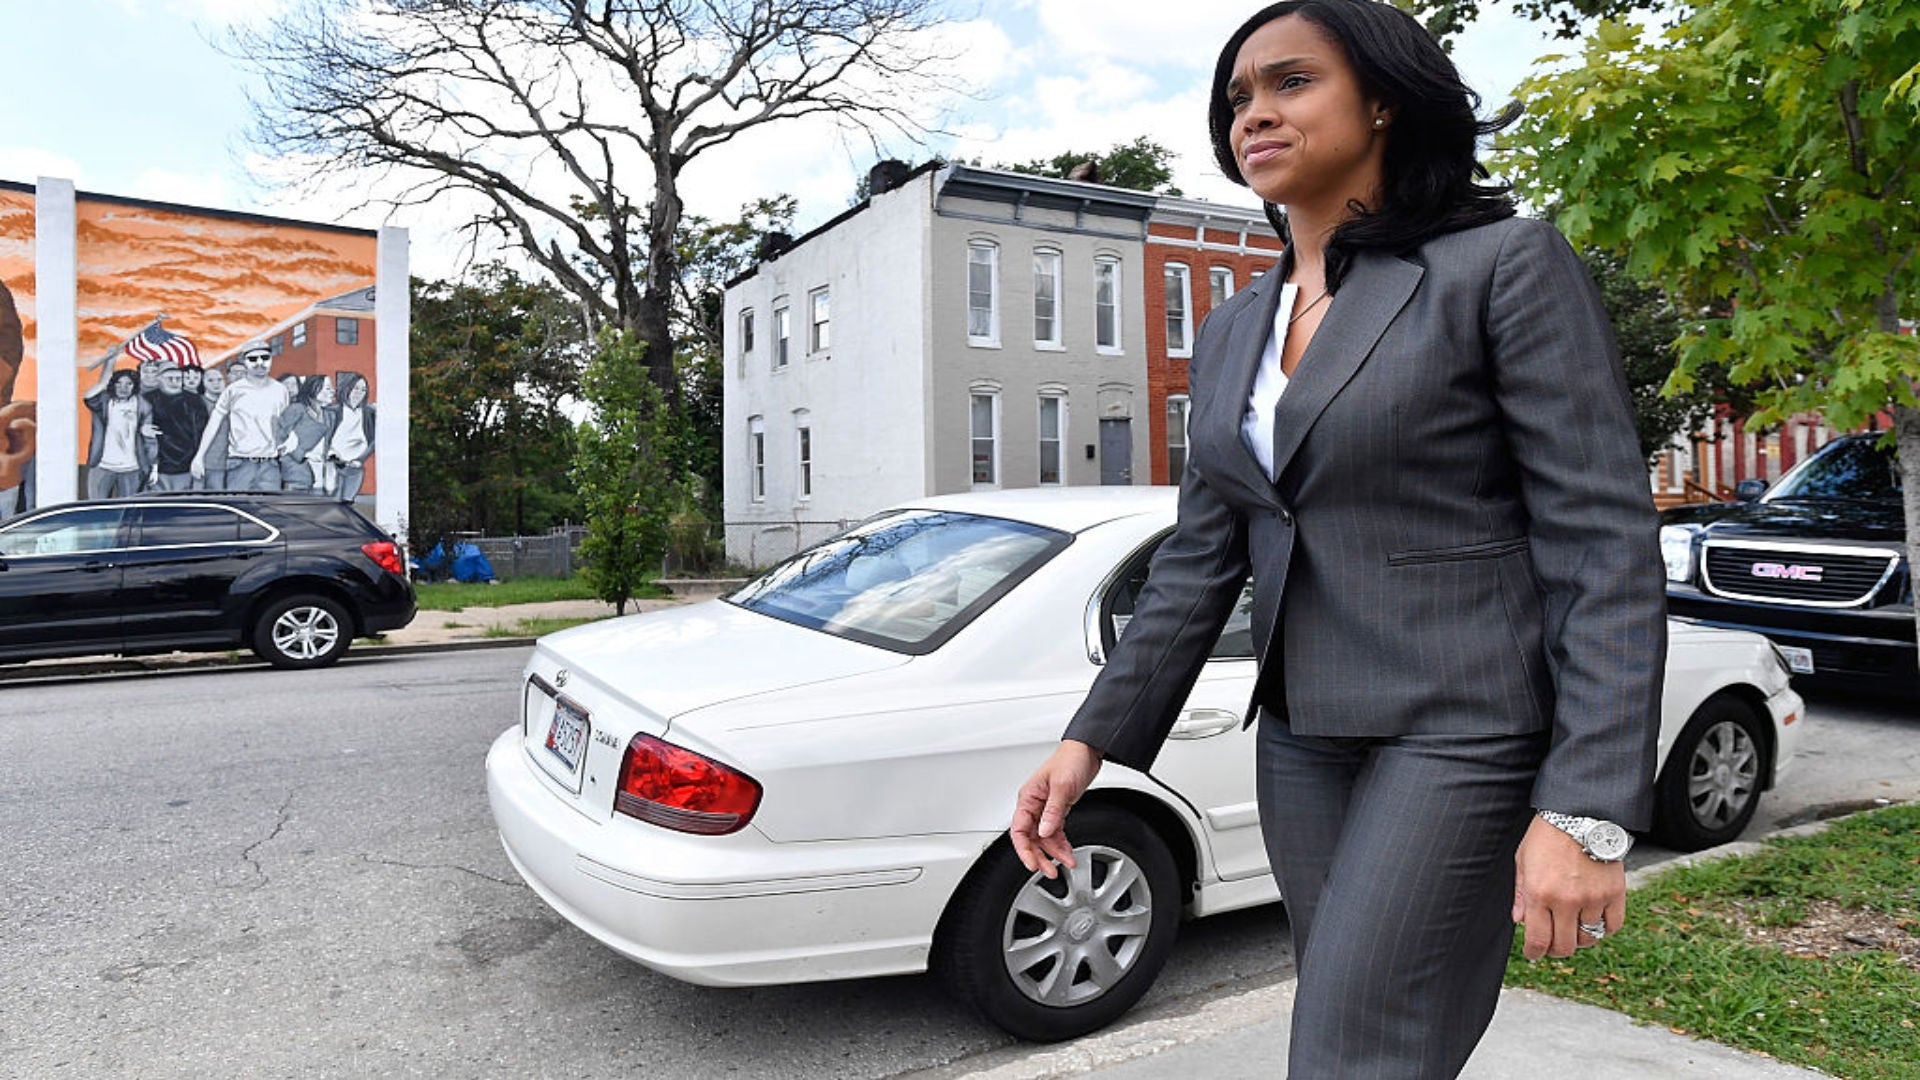 Baltimore Prosecutor Seeks To Throw Out 790 Unjust Criminal Convictions Associated With 25 Corrupt Police Officers